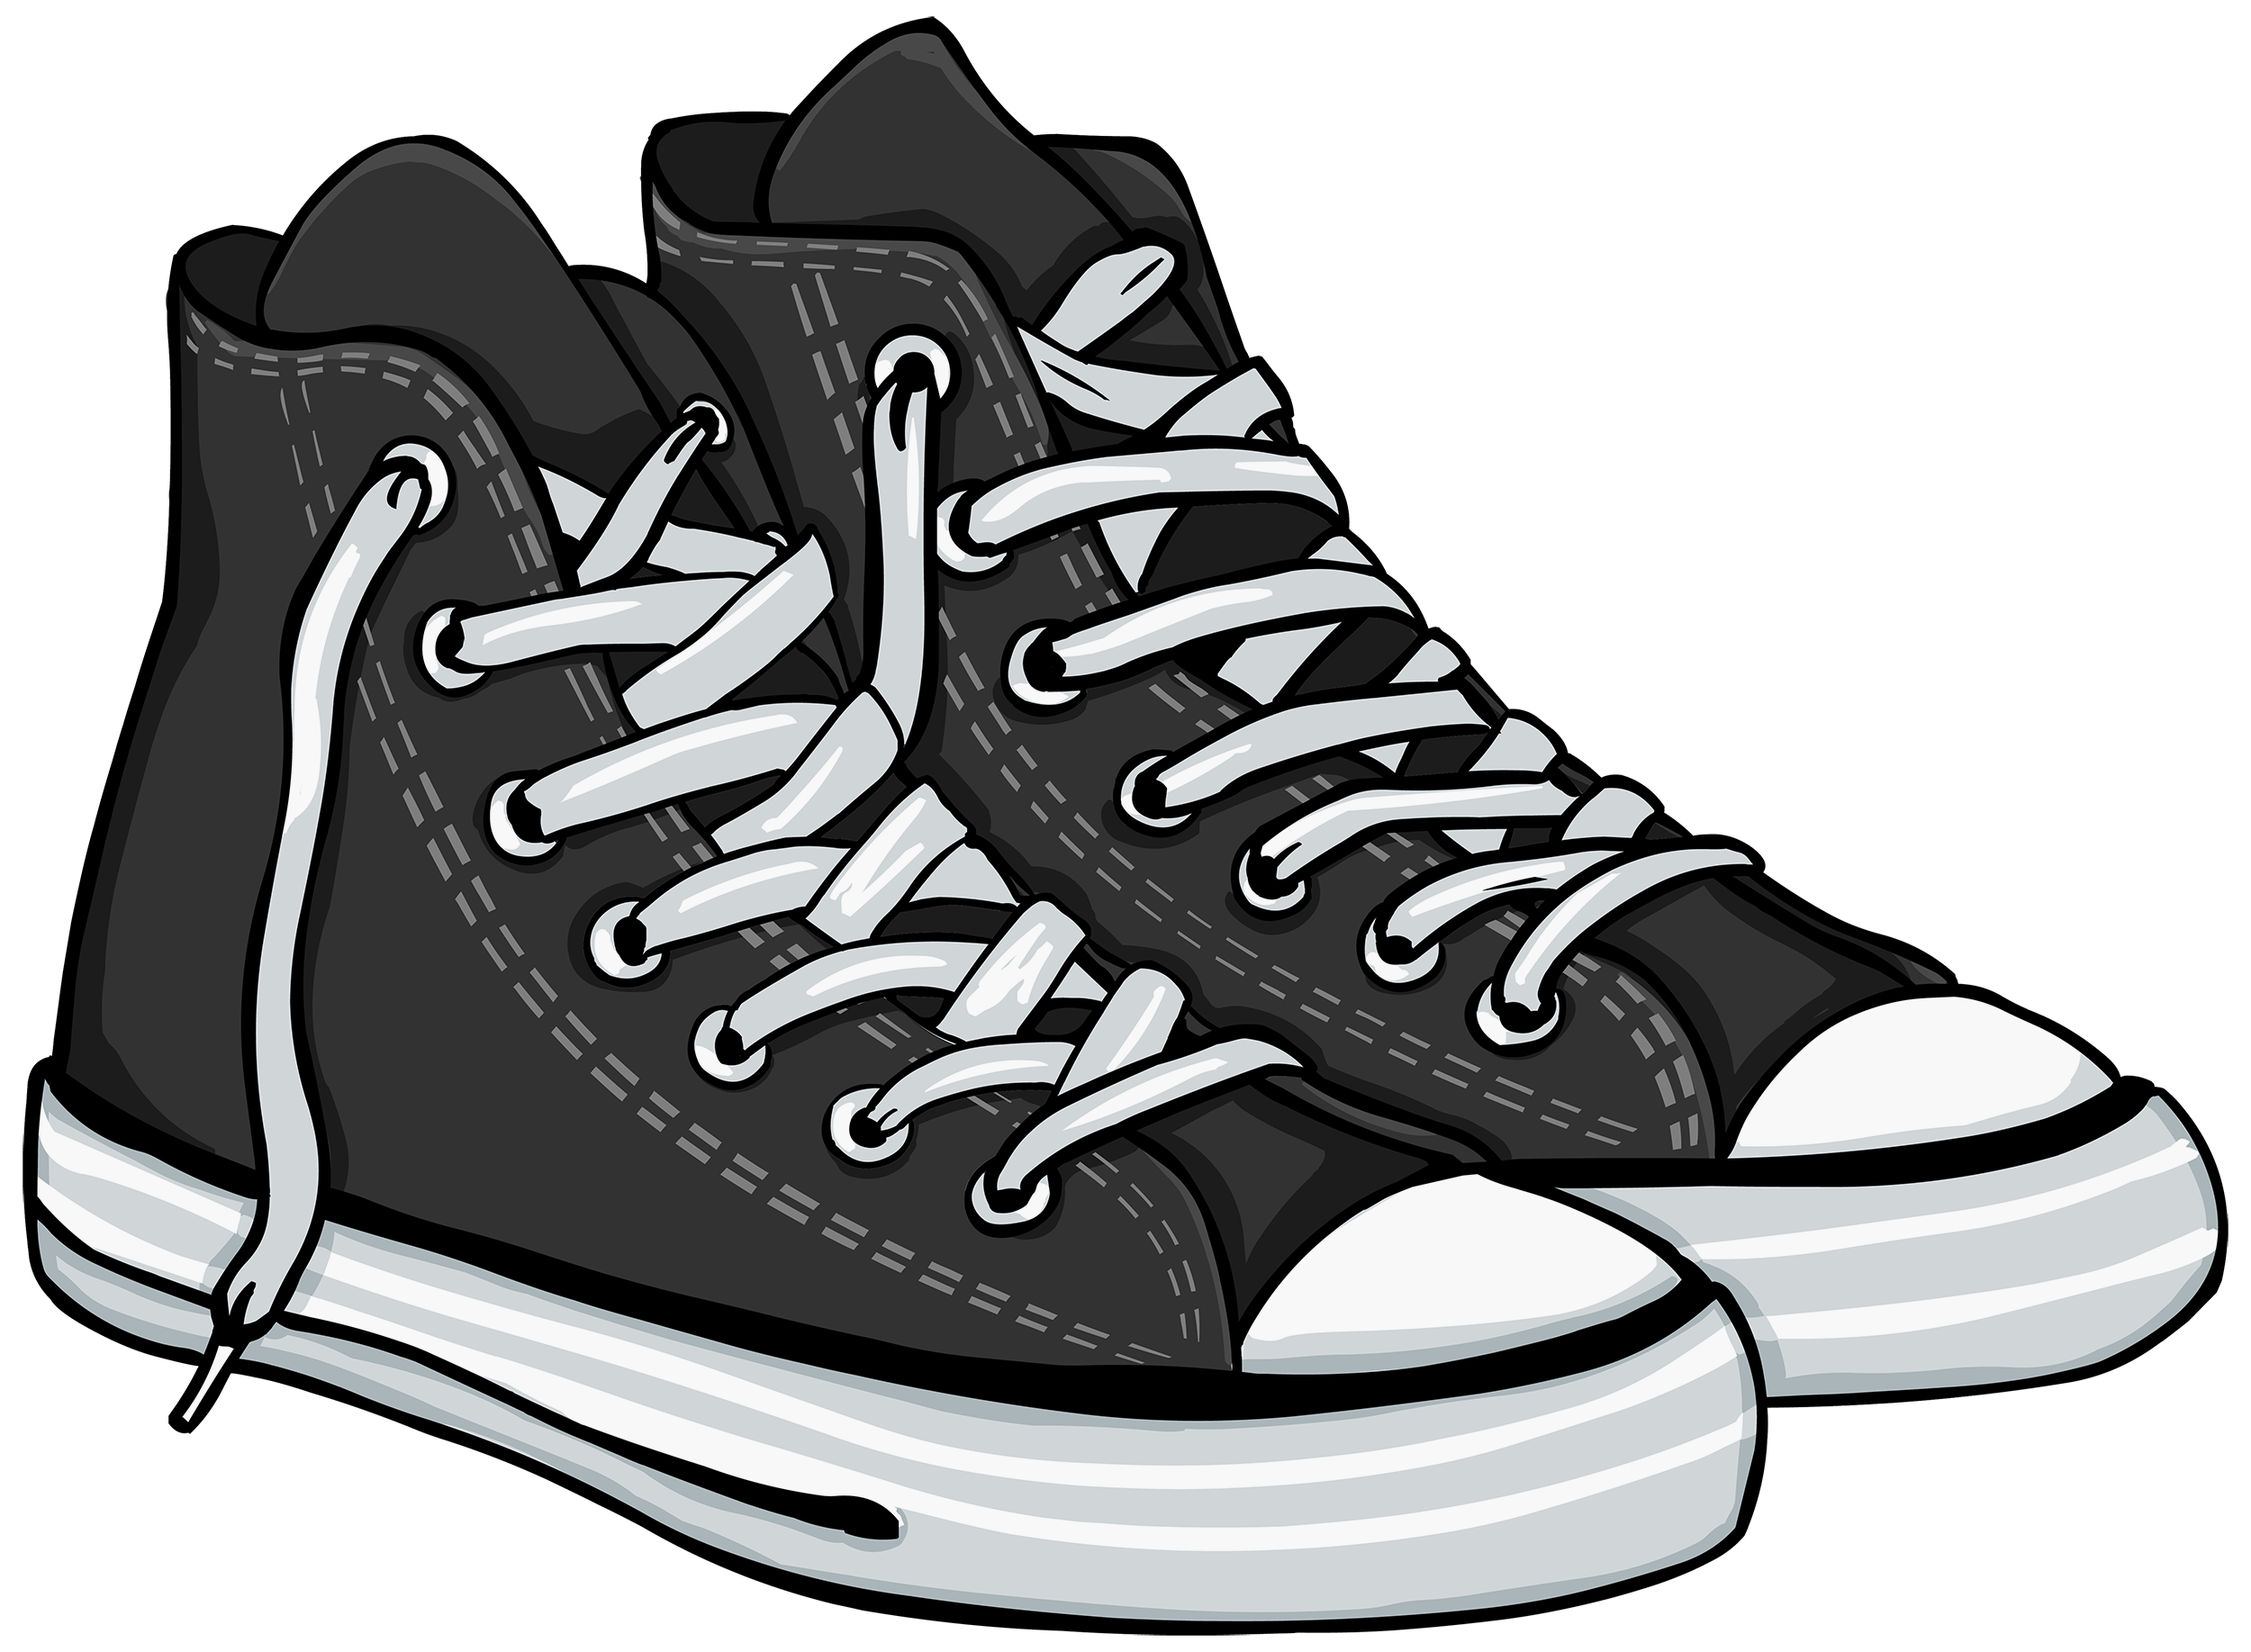 clip download Black high png best. Sneakers clipart